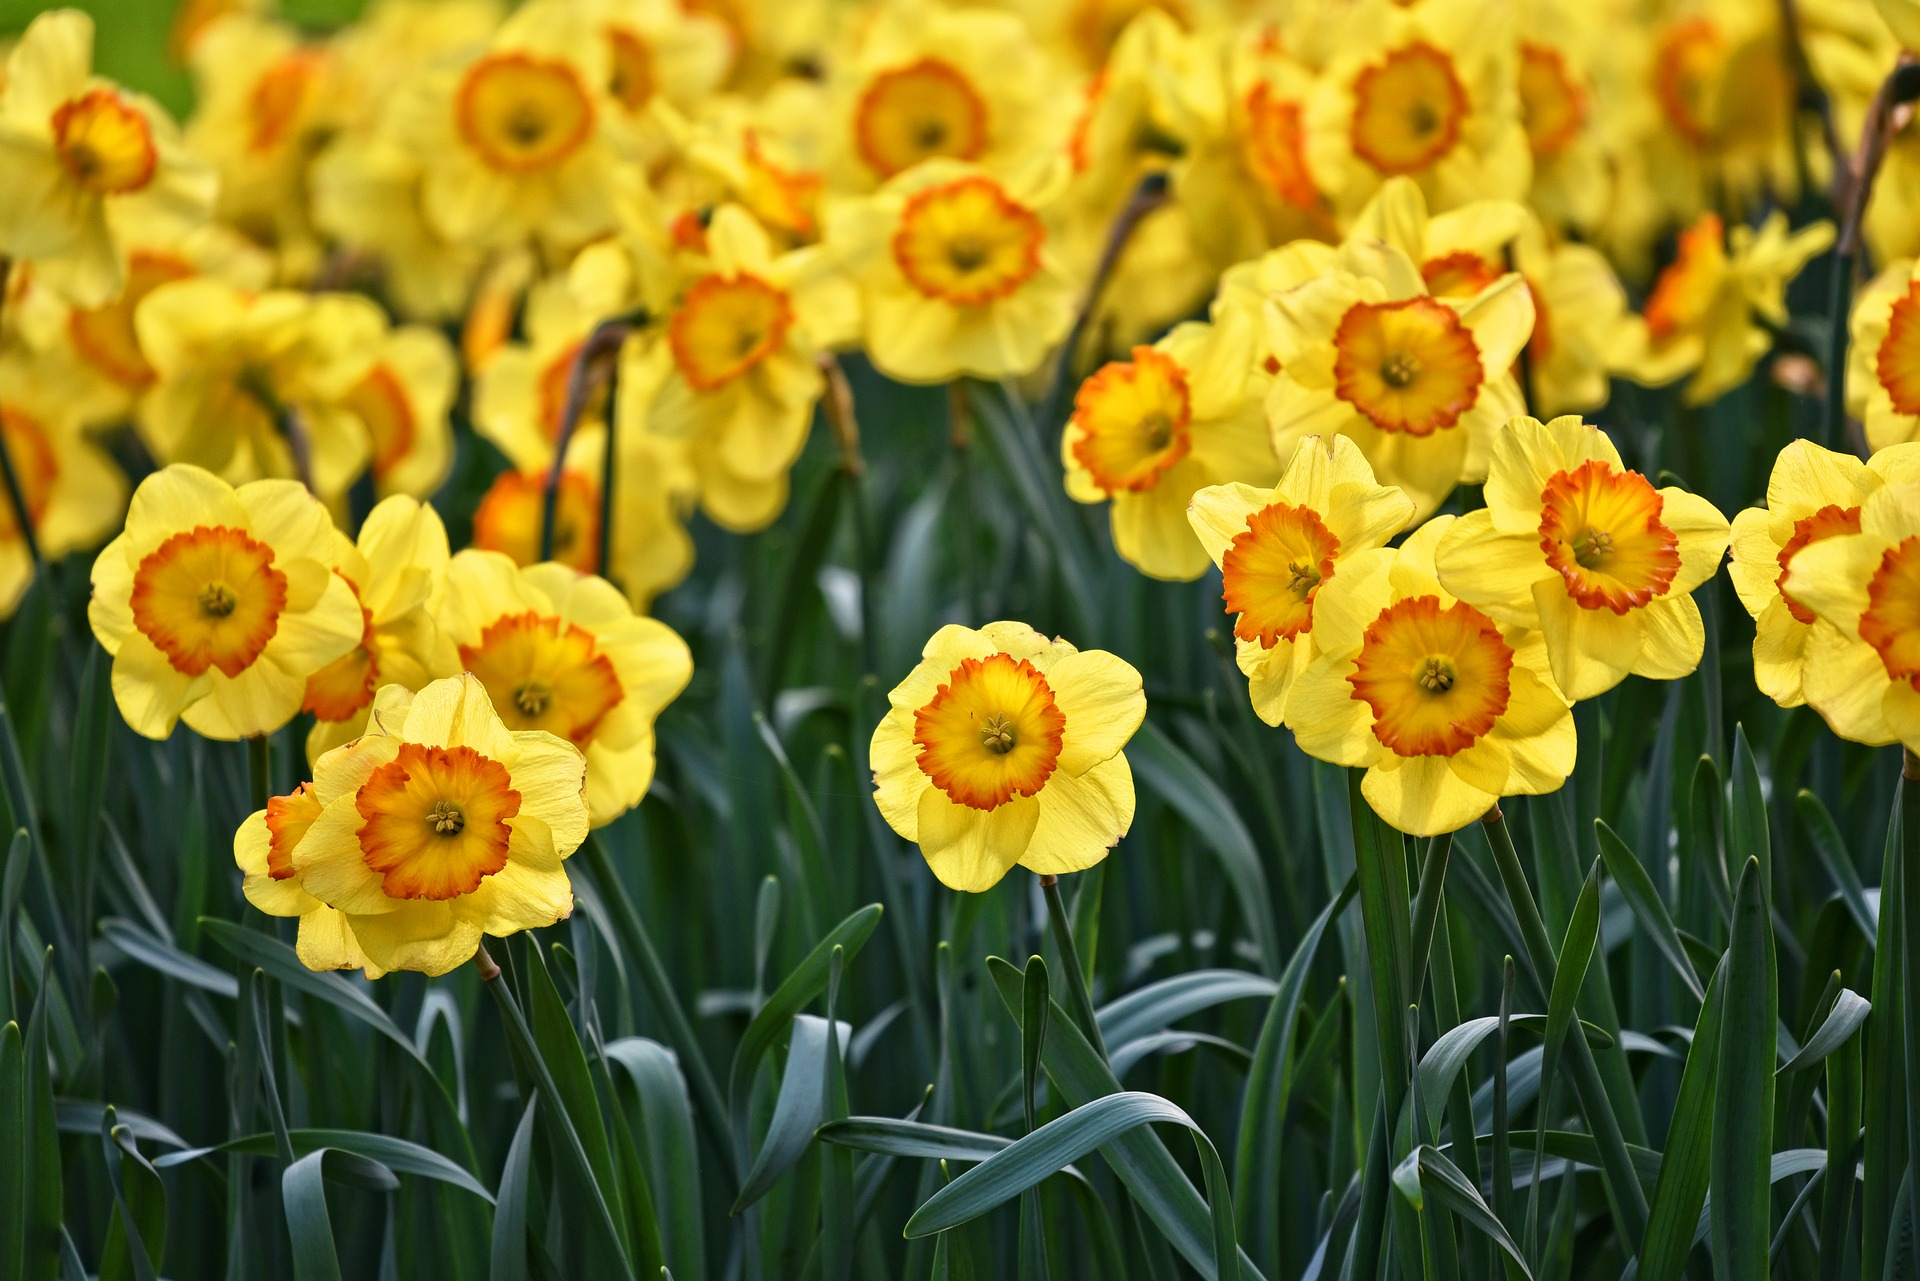 7 Fun Facts You Did Not Know About Daffodils